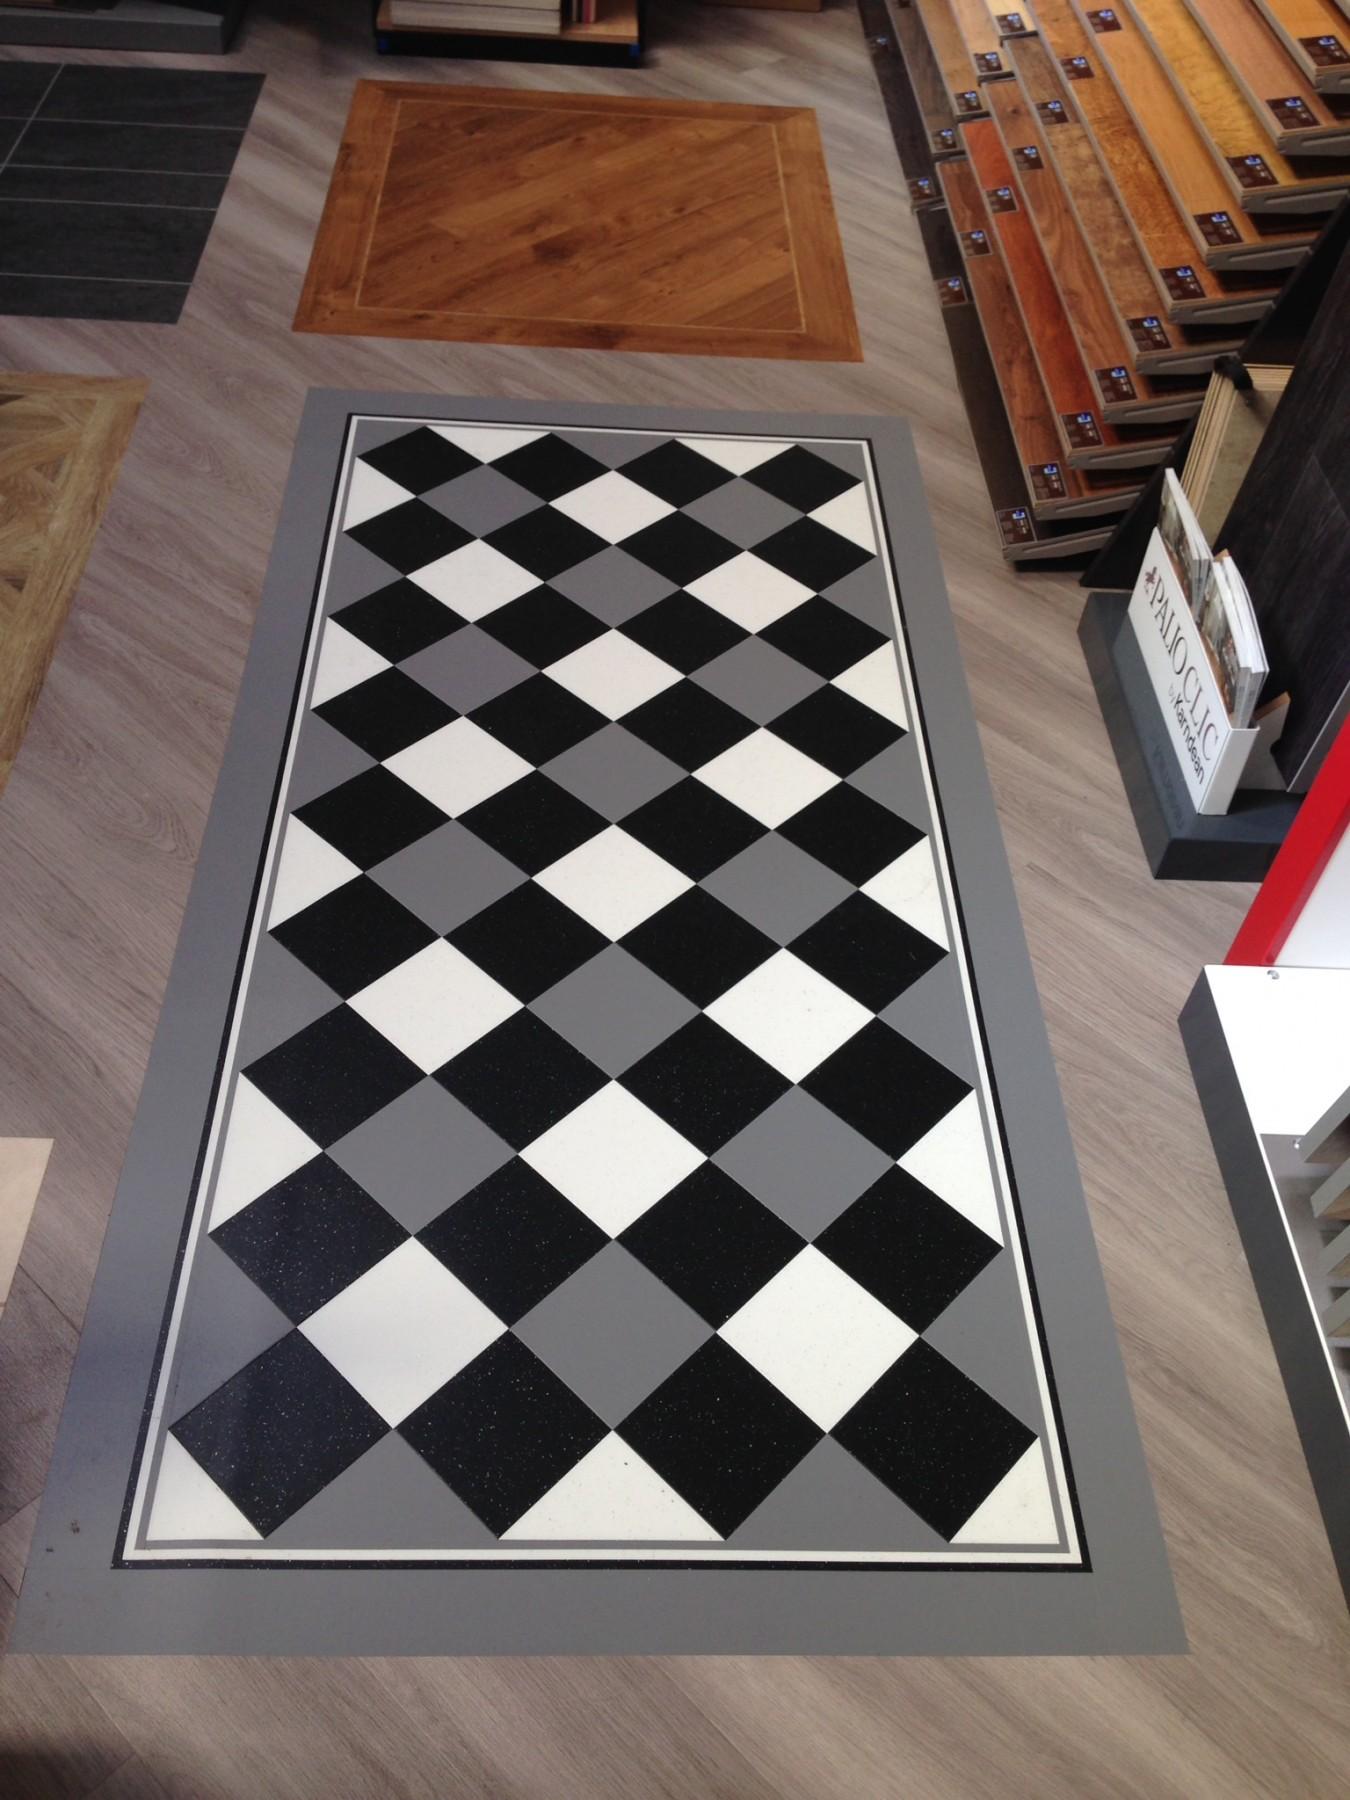 Grey flooring with a black and white patterned floor